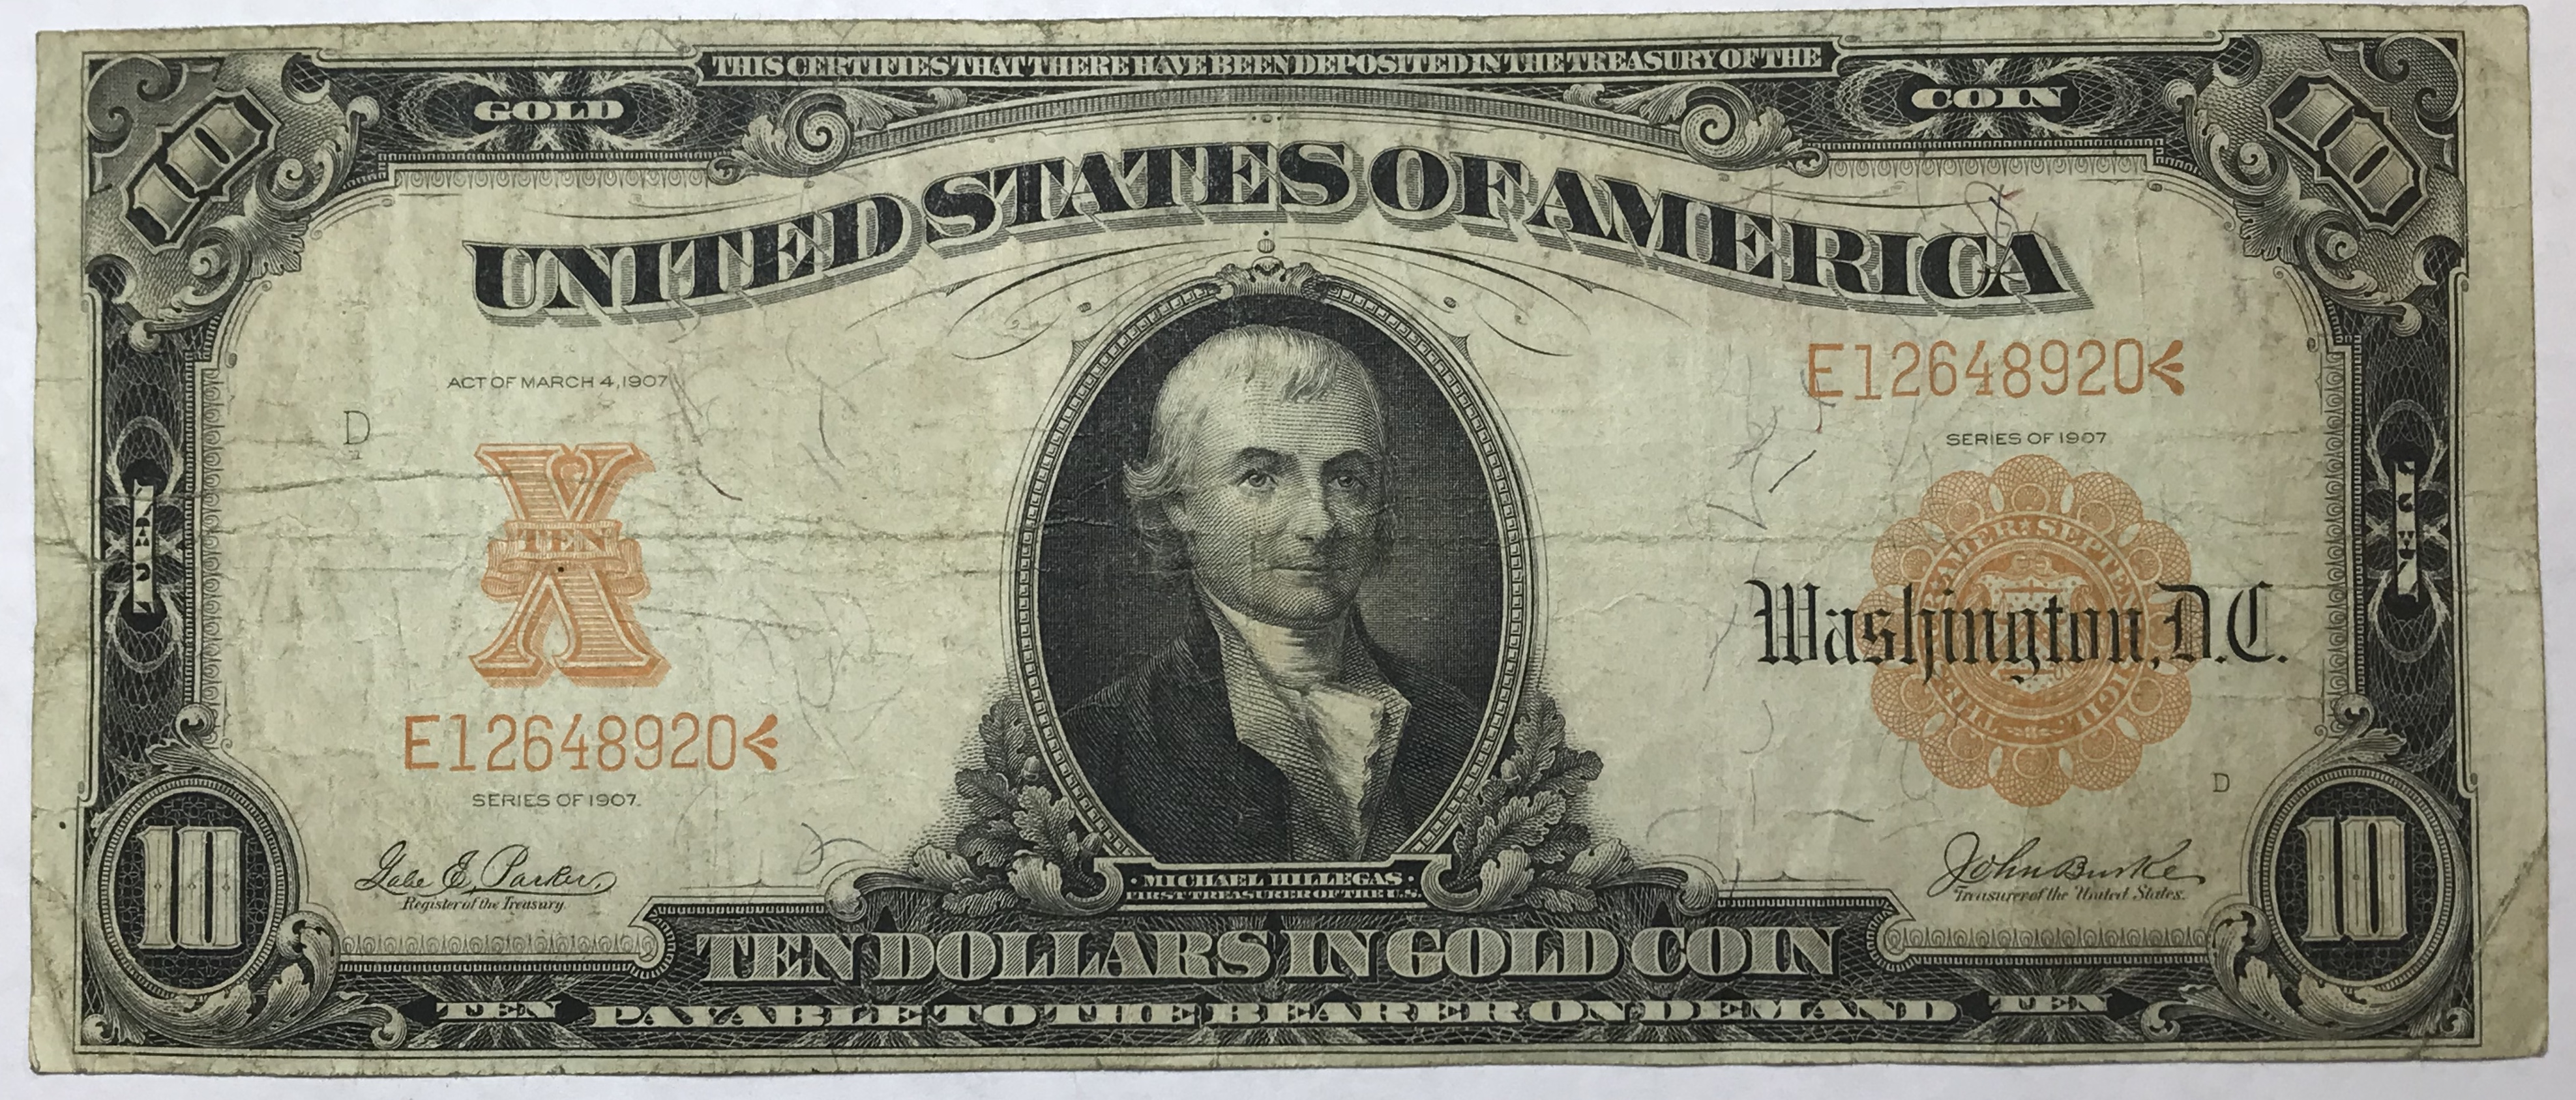 1907 10 large size gold certificate historical note payable in